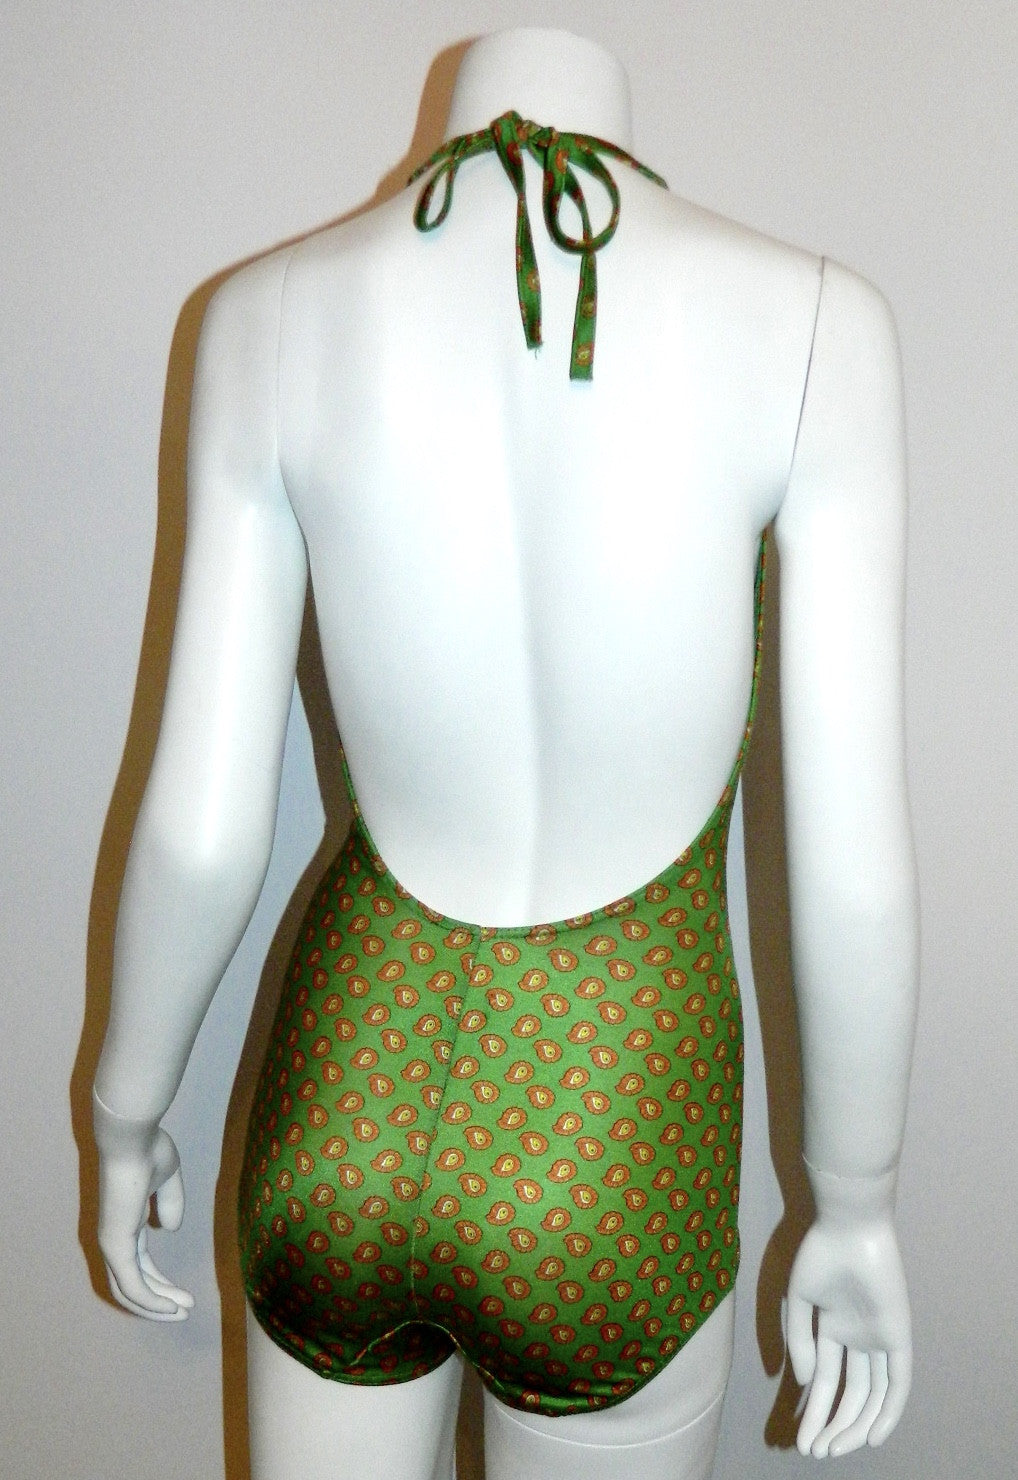 vintage 1970s green paisley JerSea of Sweden swim suit Halter neck bathing suit XS - S